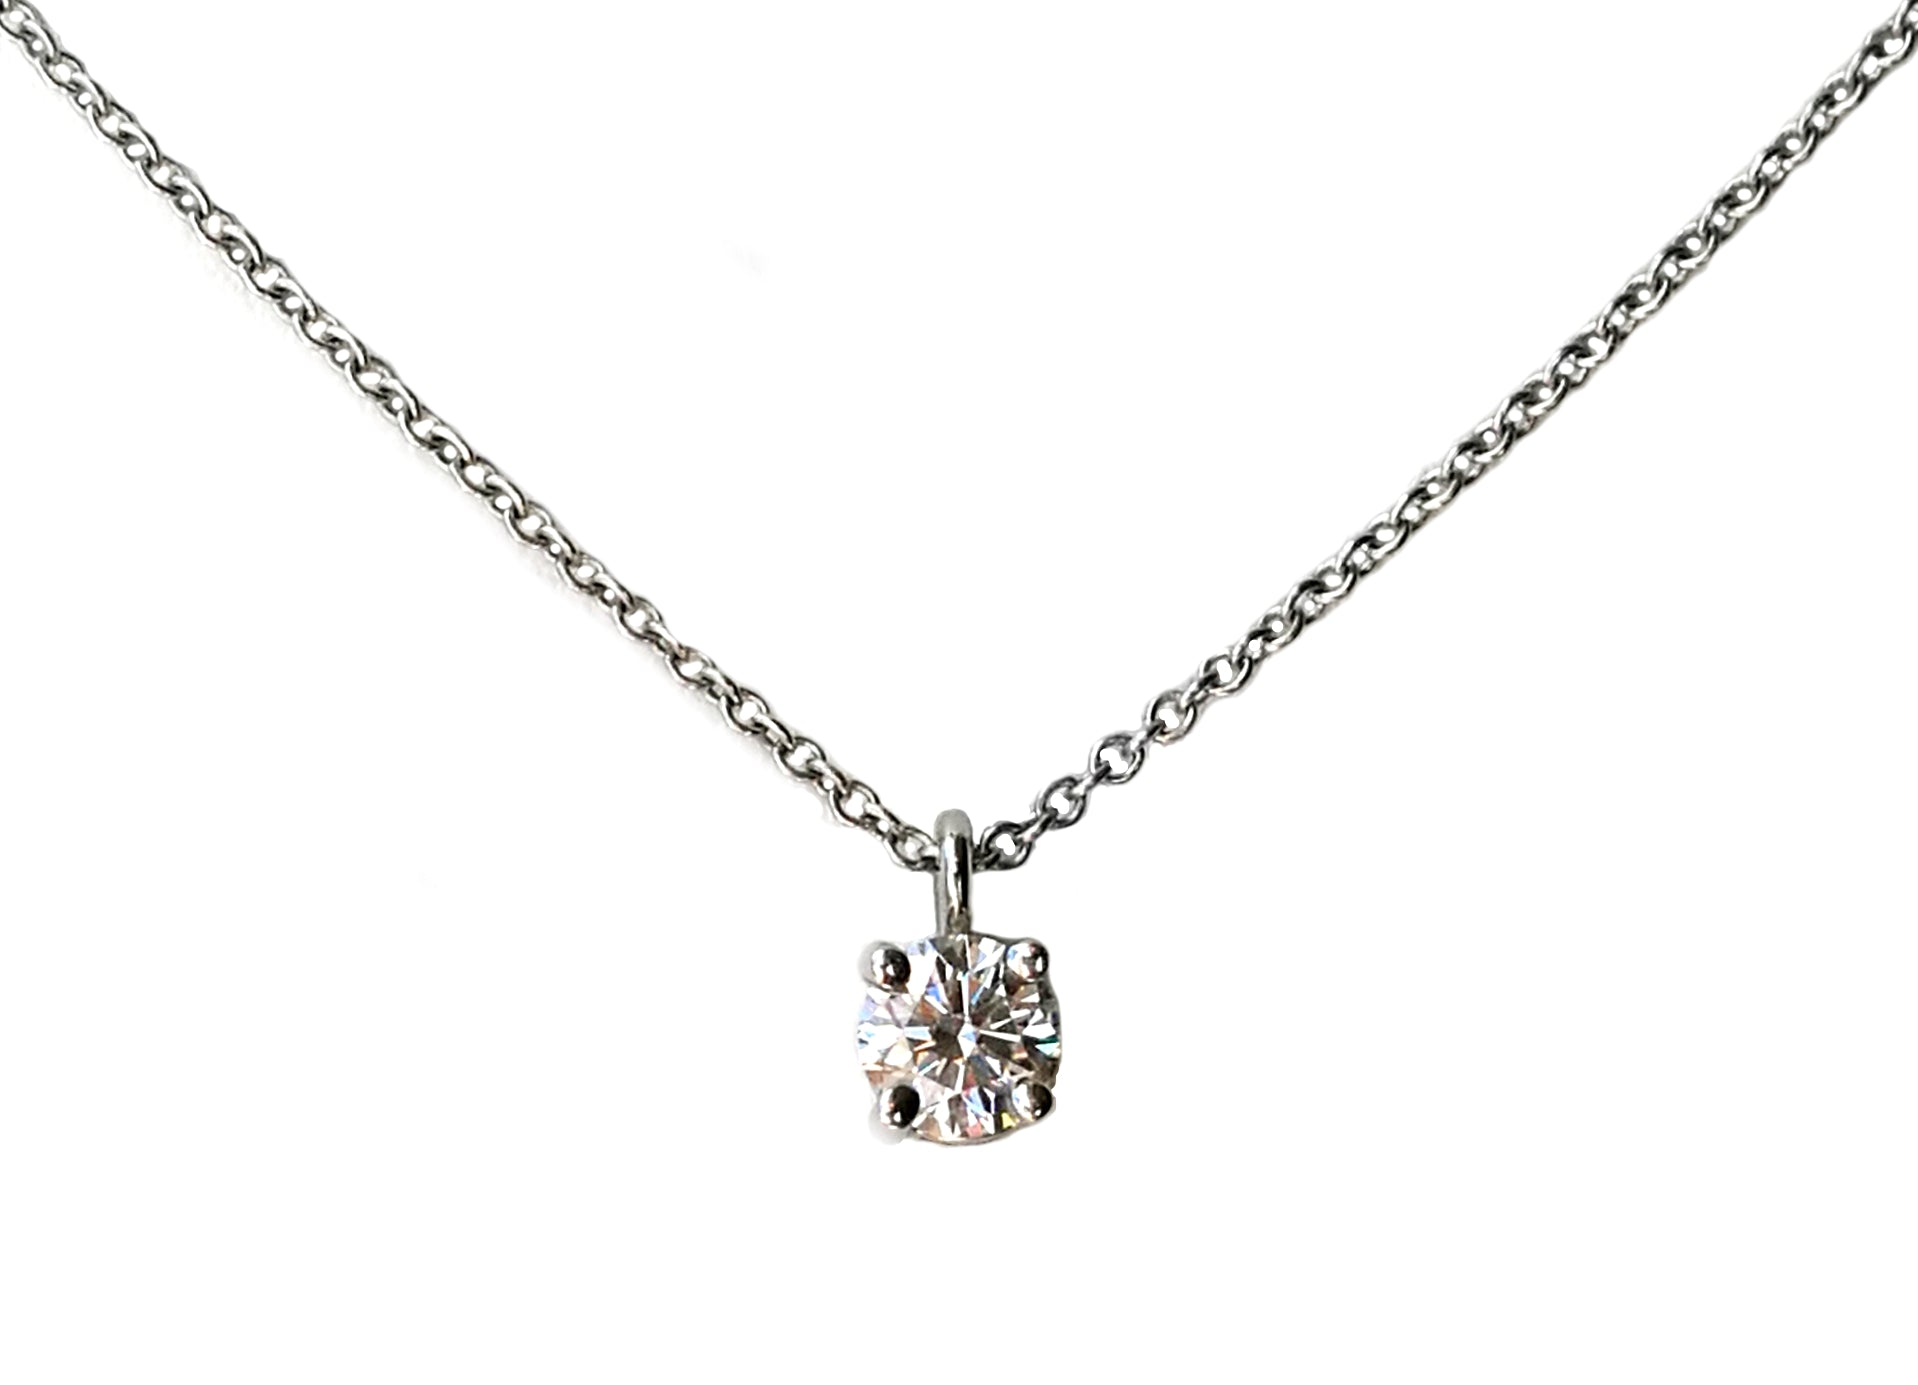 Tiffany co 031ct hvvs1 round brilliant diamond solitaire tiffany co 031ct hvvs1 round brilliant diamond solitaire pendant 16 inch chain aloadofball Images